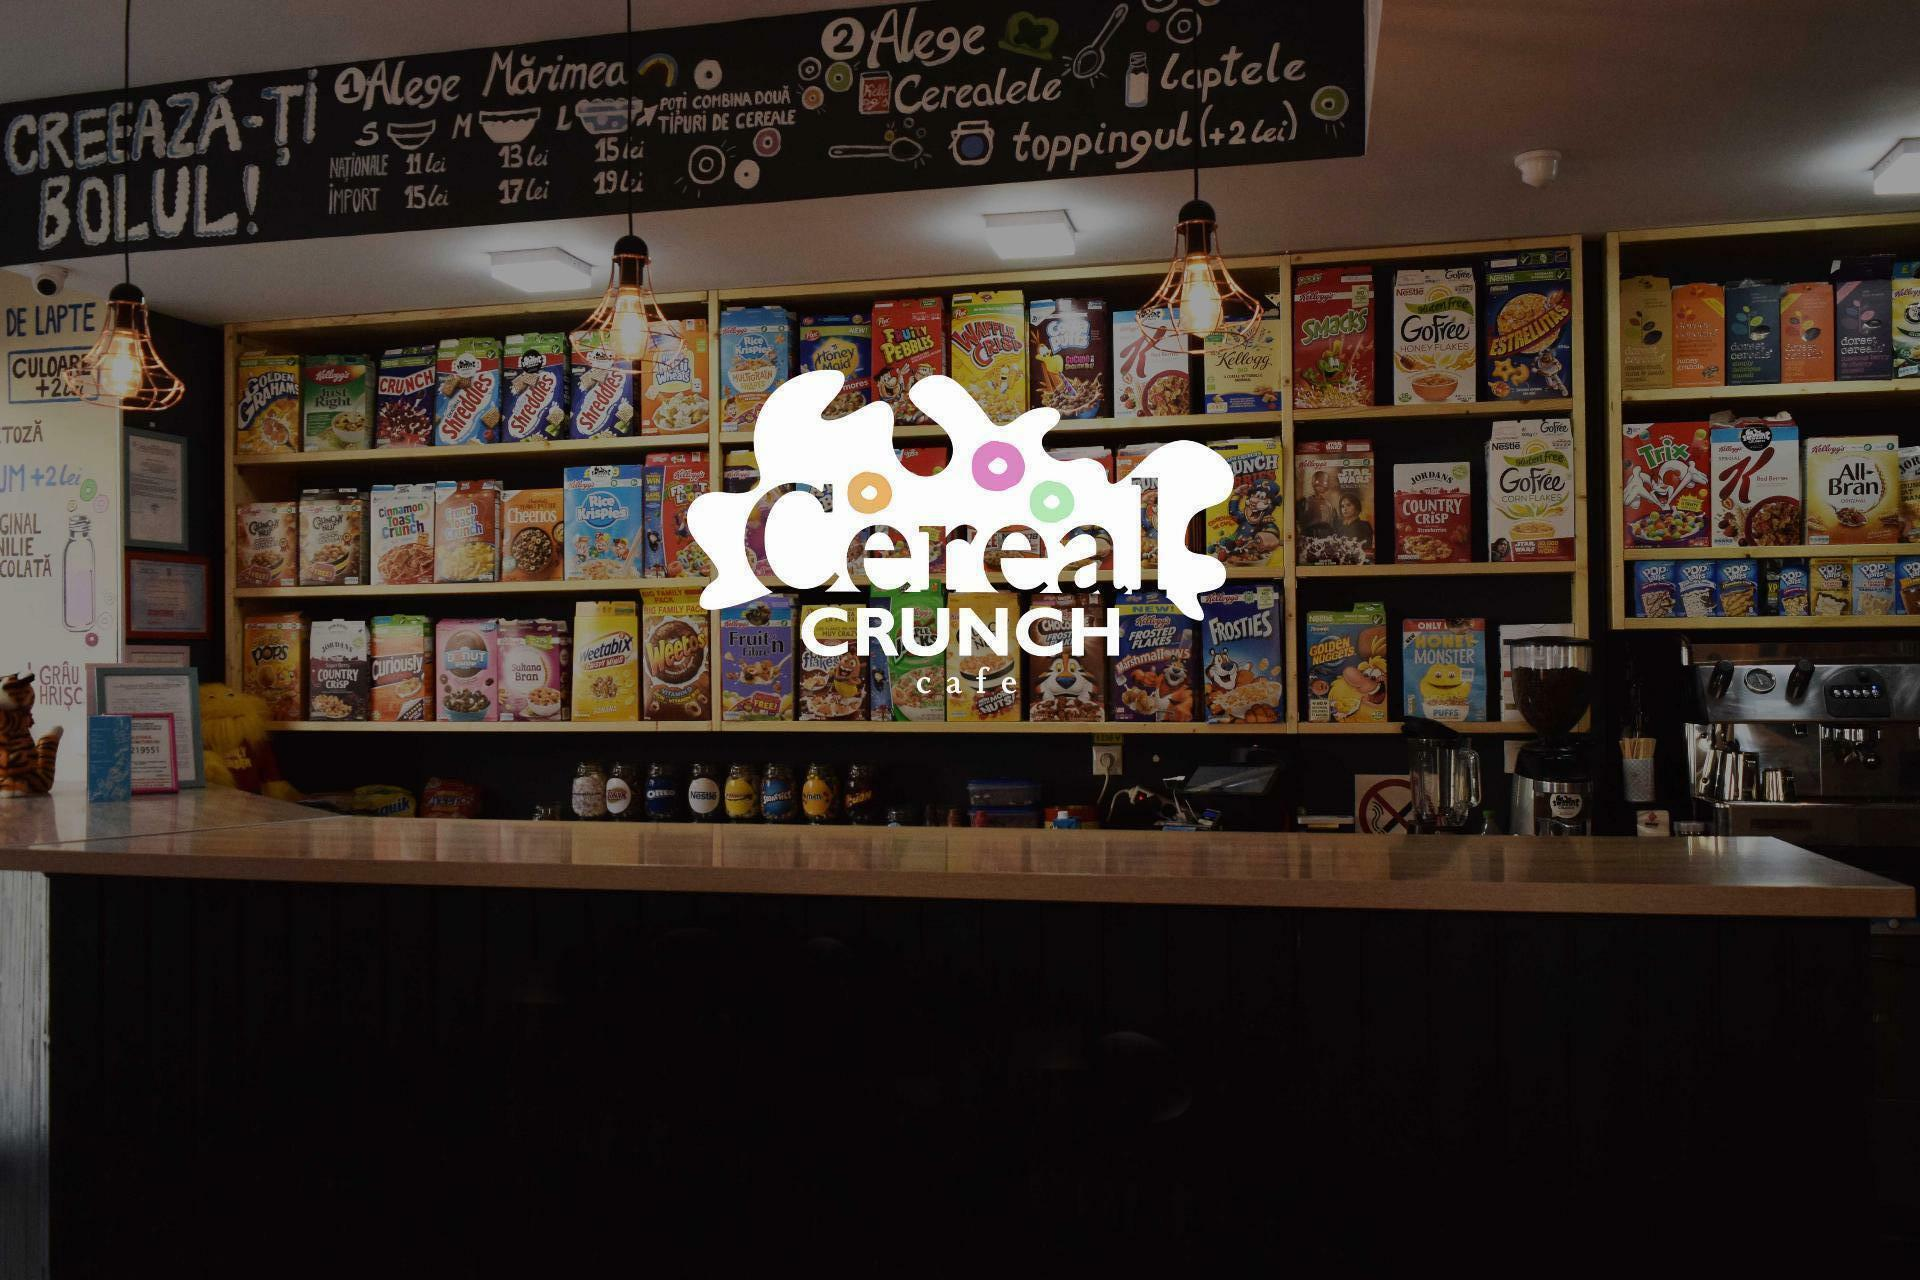 Cereal Crunch Cafe: Vrei cereale? Au Cereale.